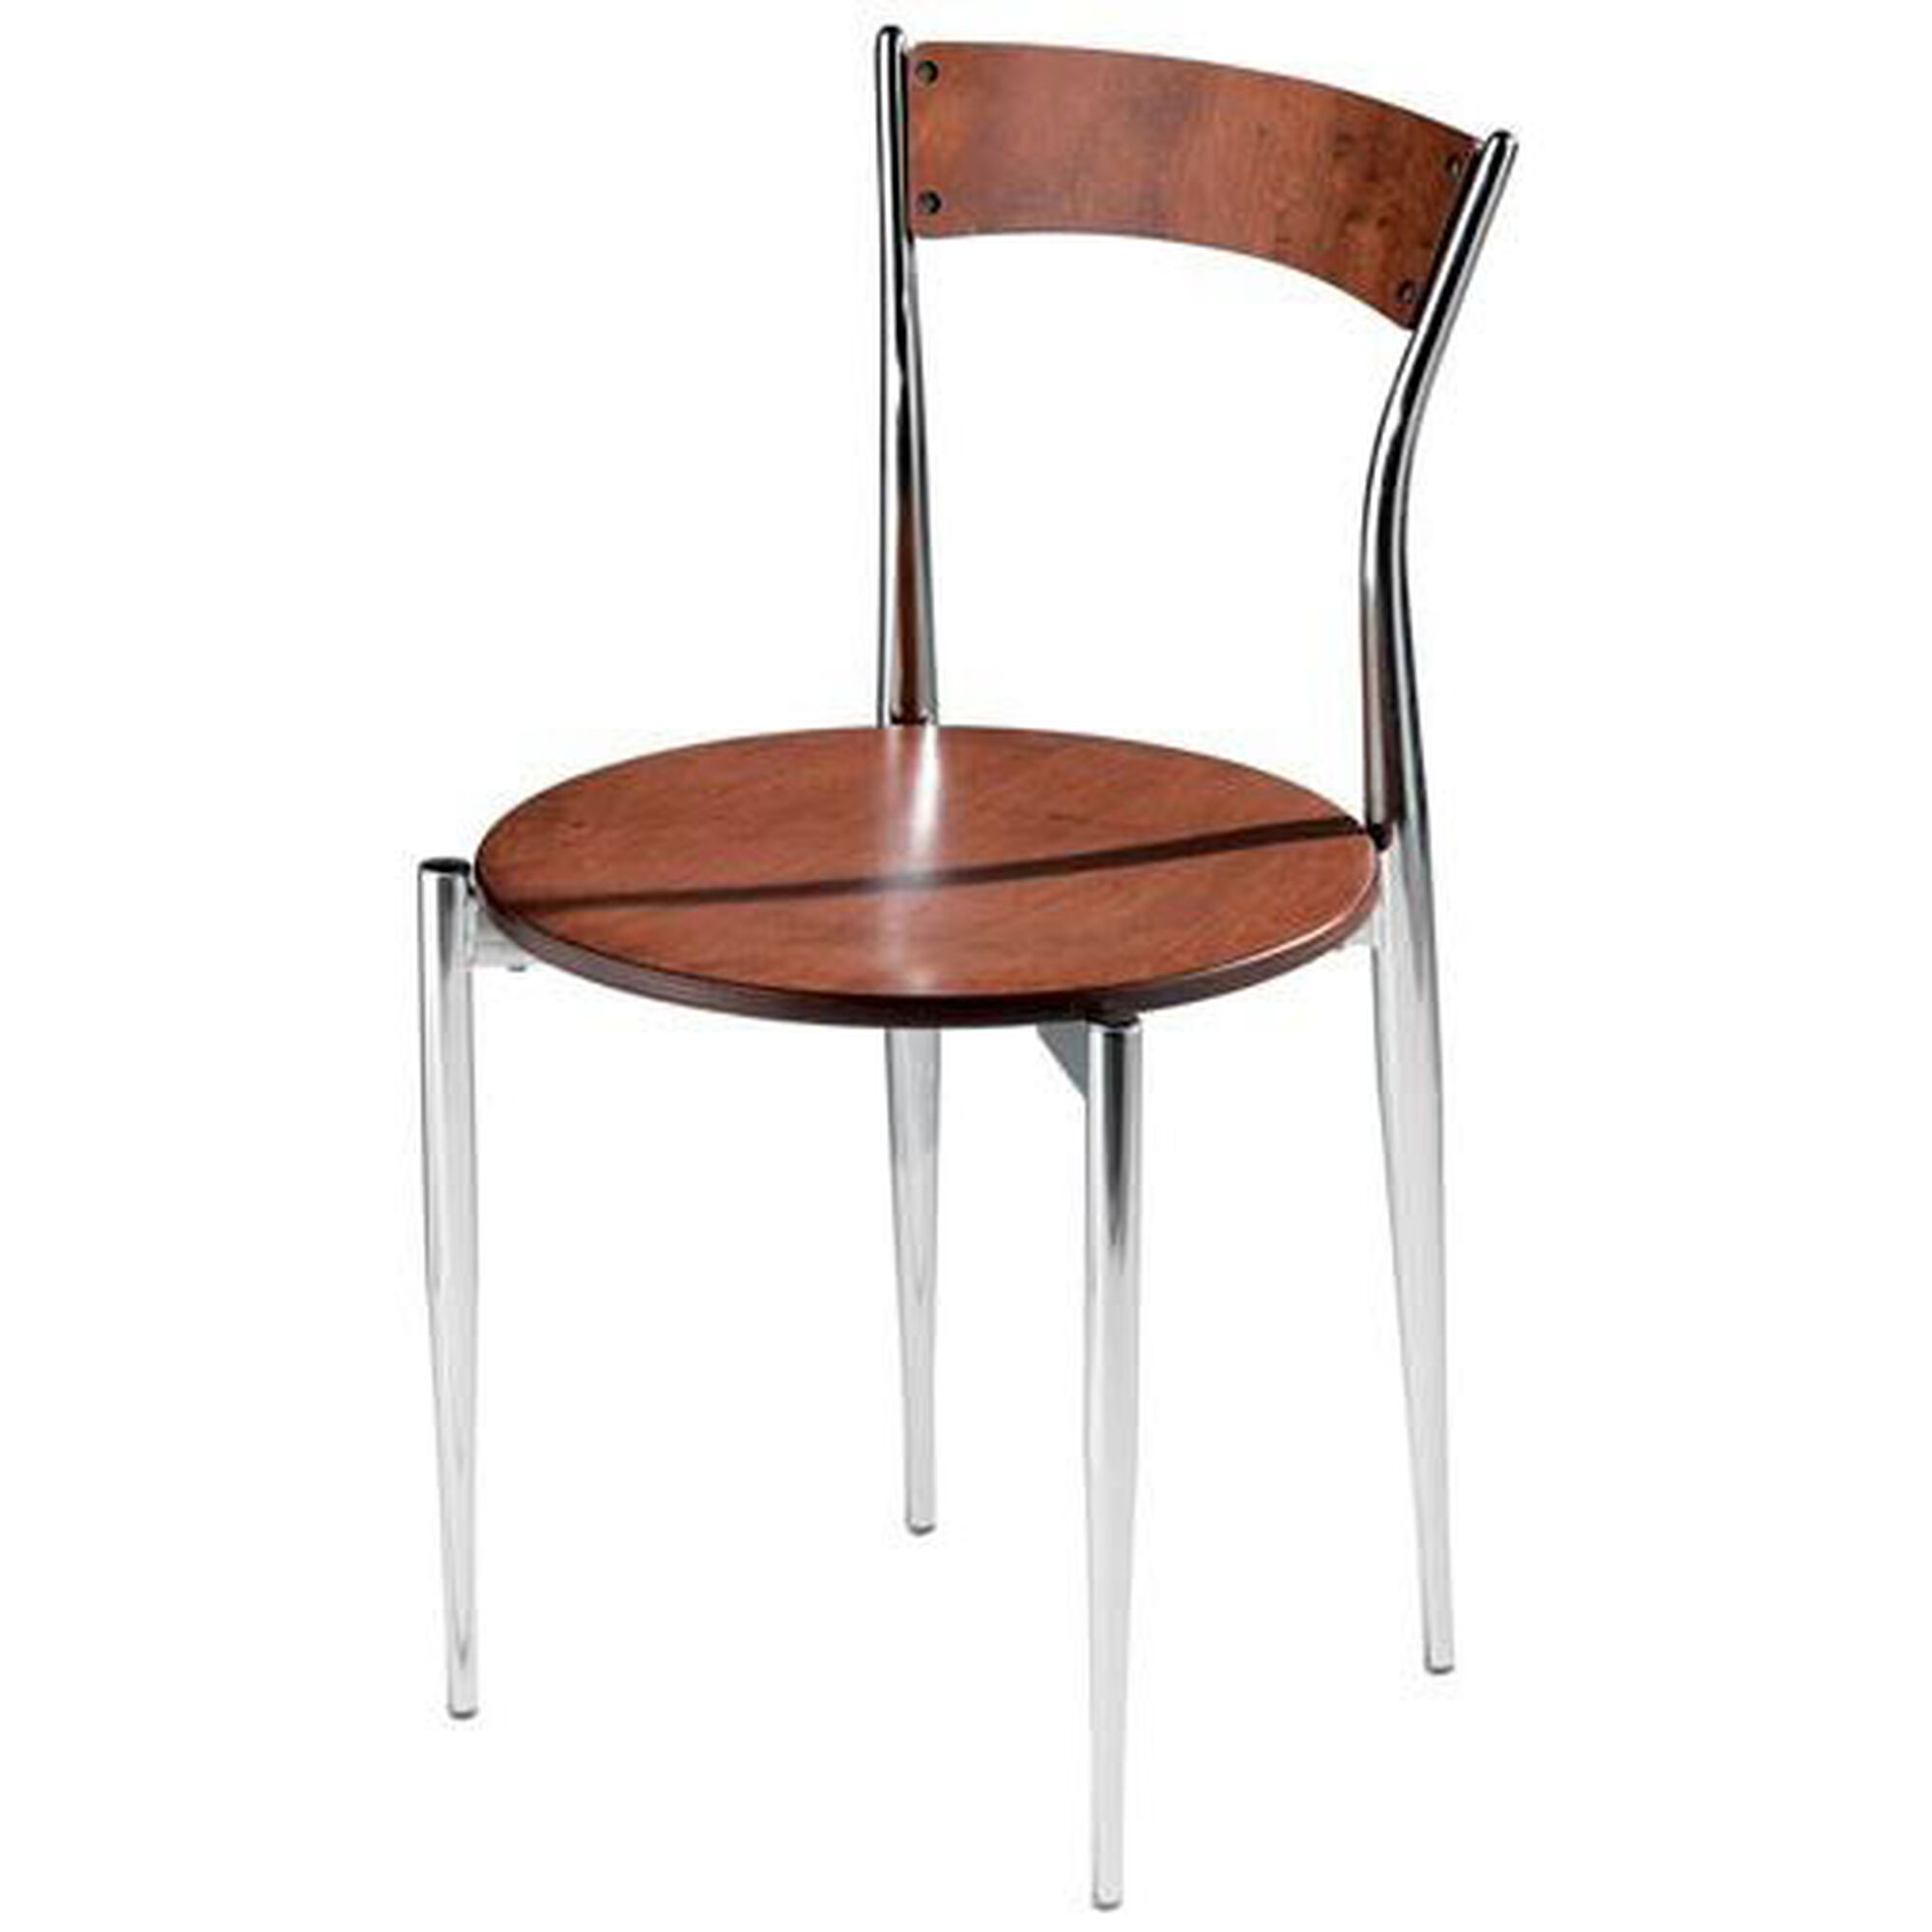 Mts Seating Cafe Twist Maple Chair With Ply Wood Back And